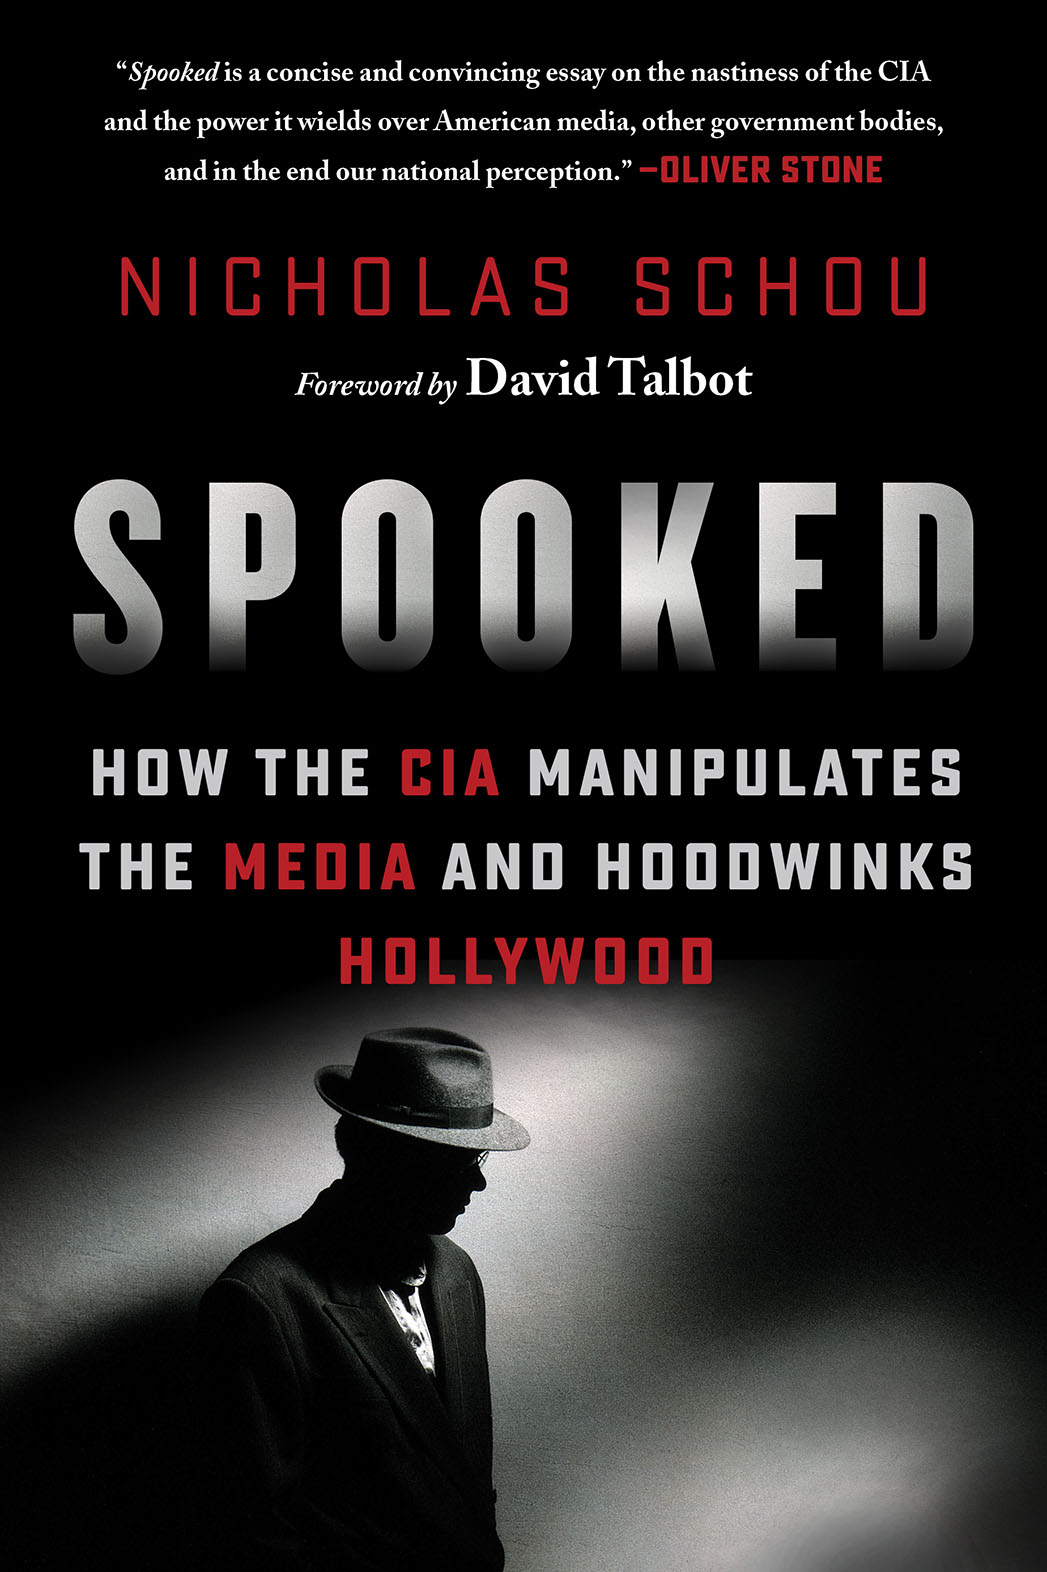 Non-Fiction: Three Digs into the CIA's Dark Side